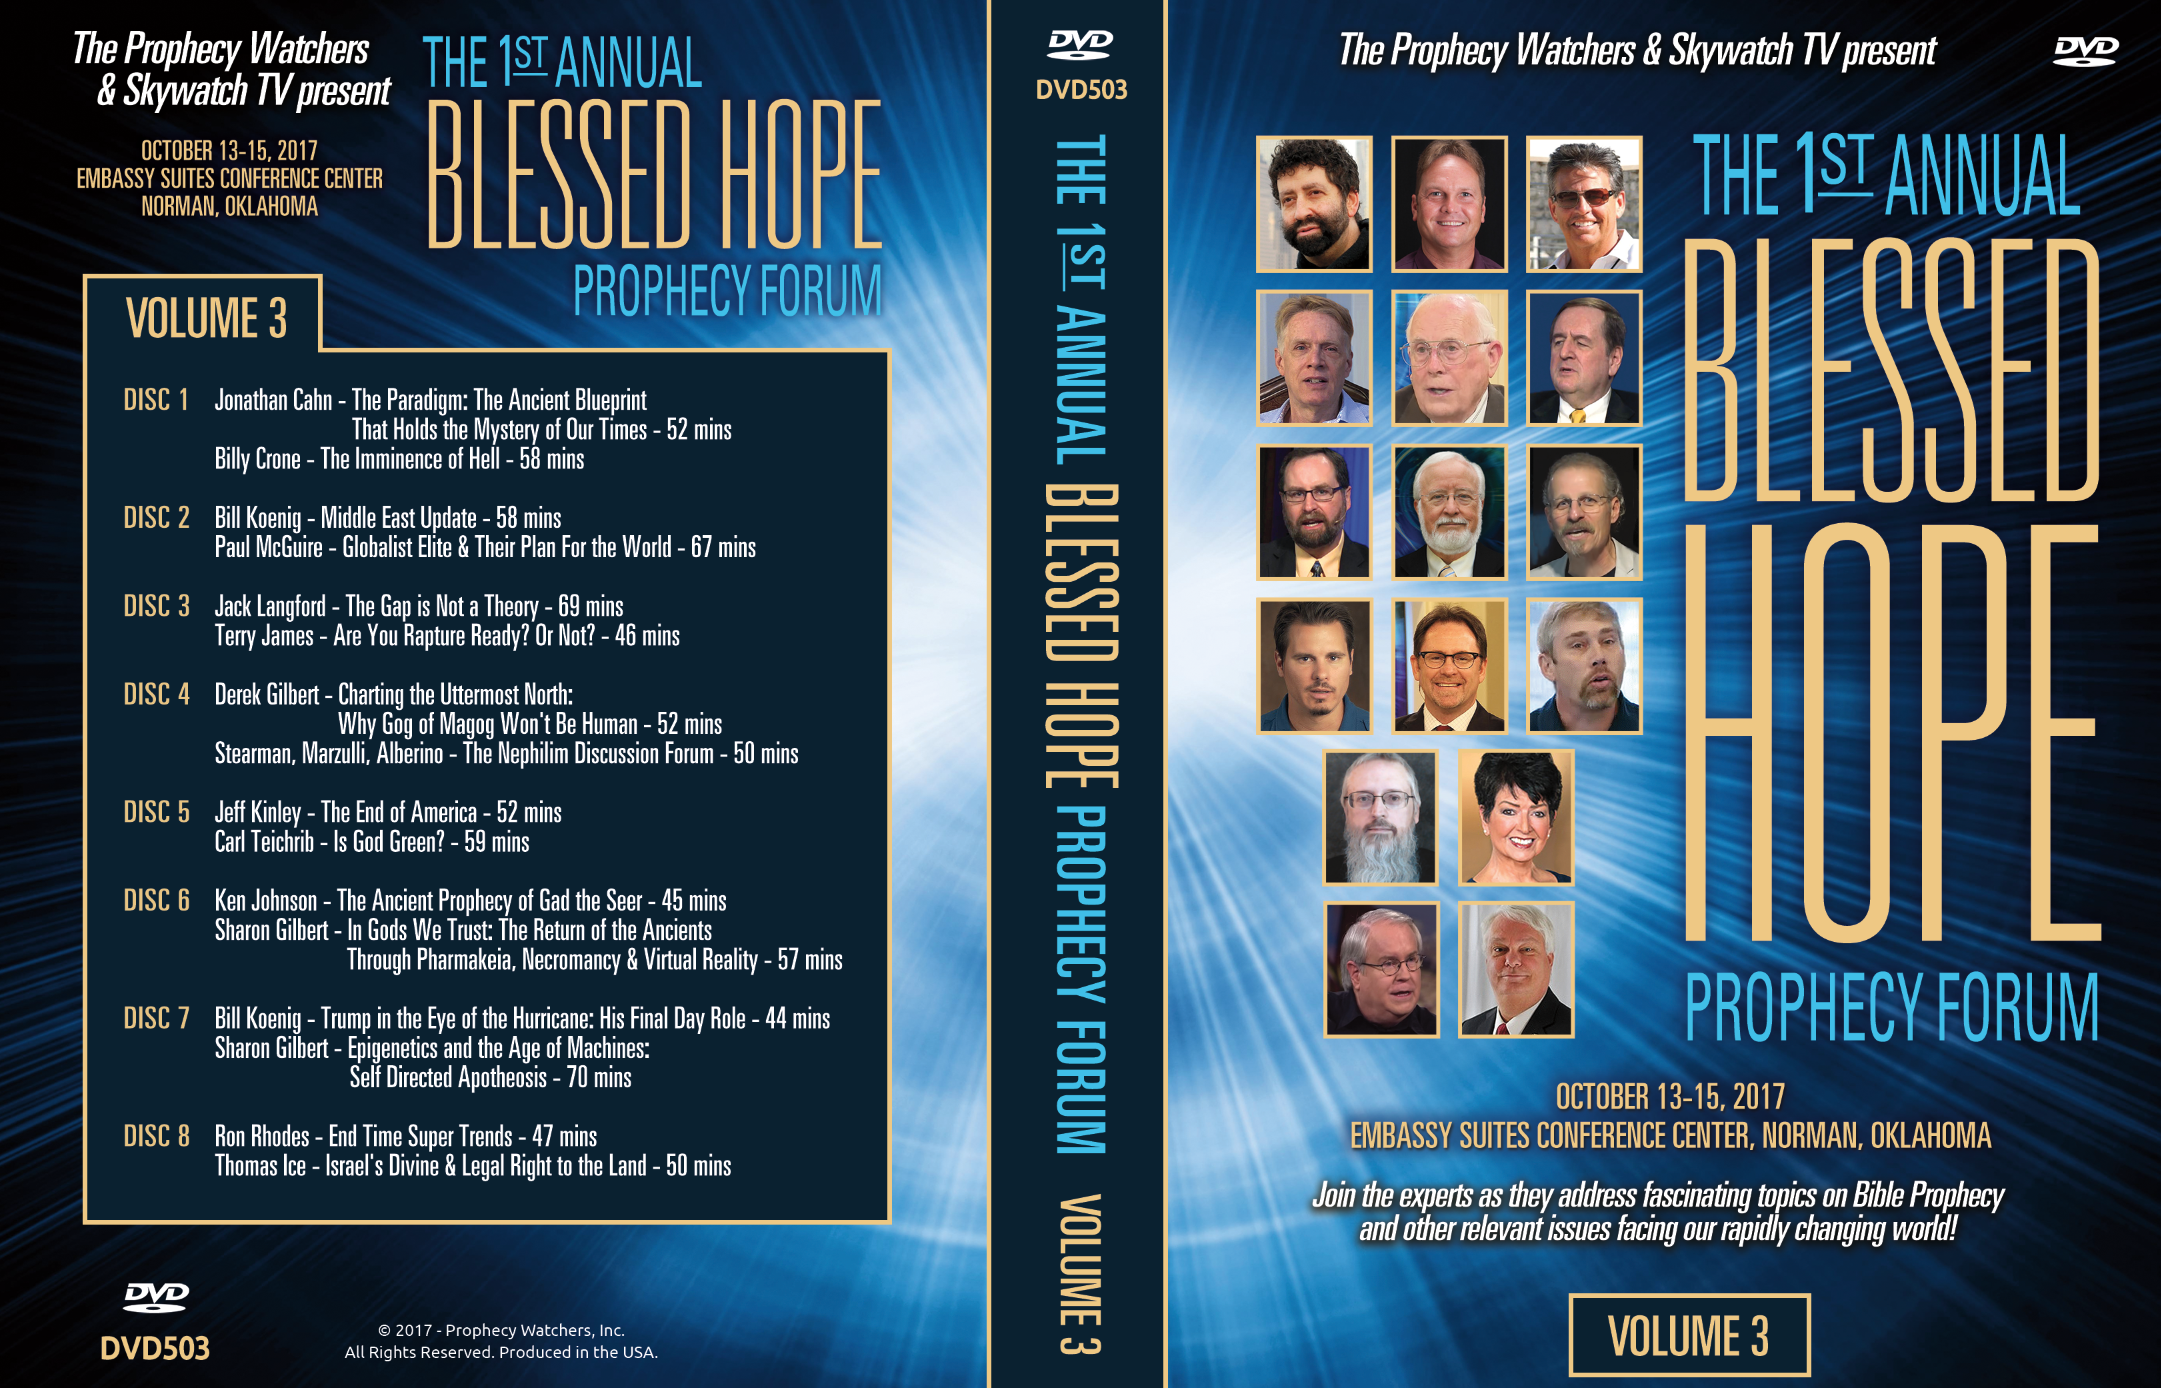 Blessed hope prophecy forum dvds volume 3 16 messages the jonathan cahn the paradigm the ancient blueprint that holds the mystery of our malvernweather Choice Image